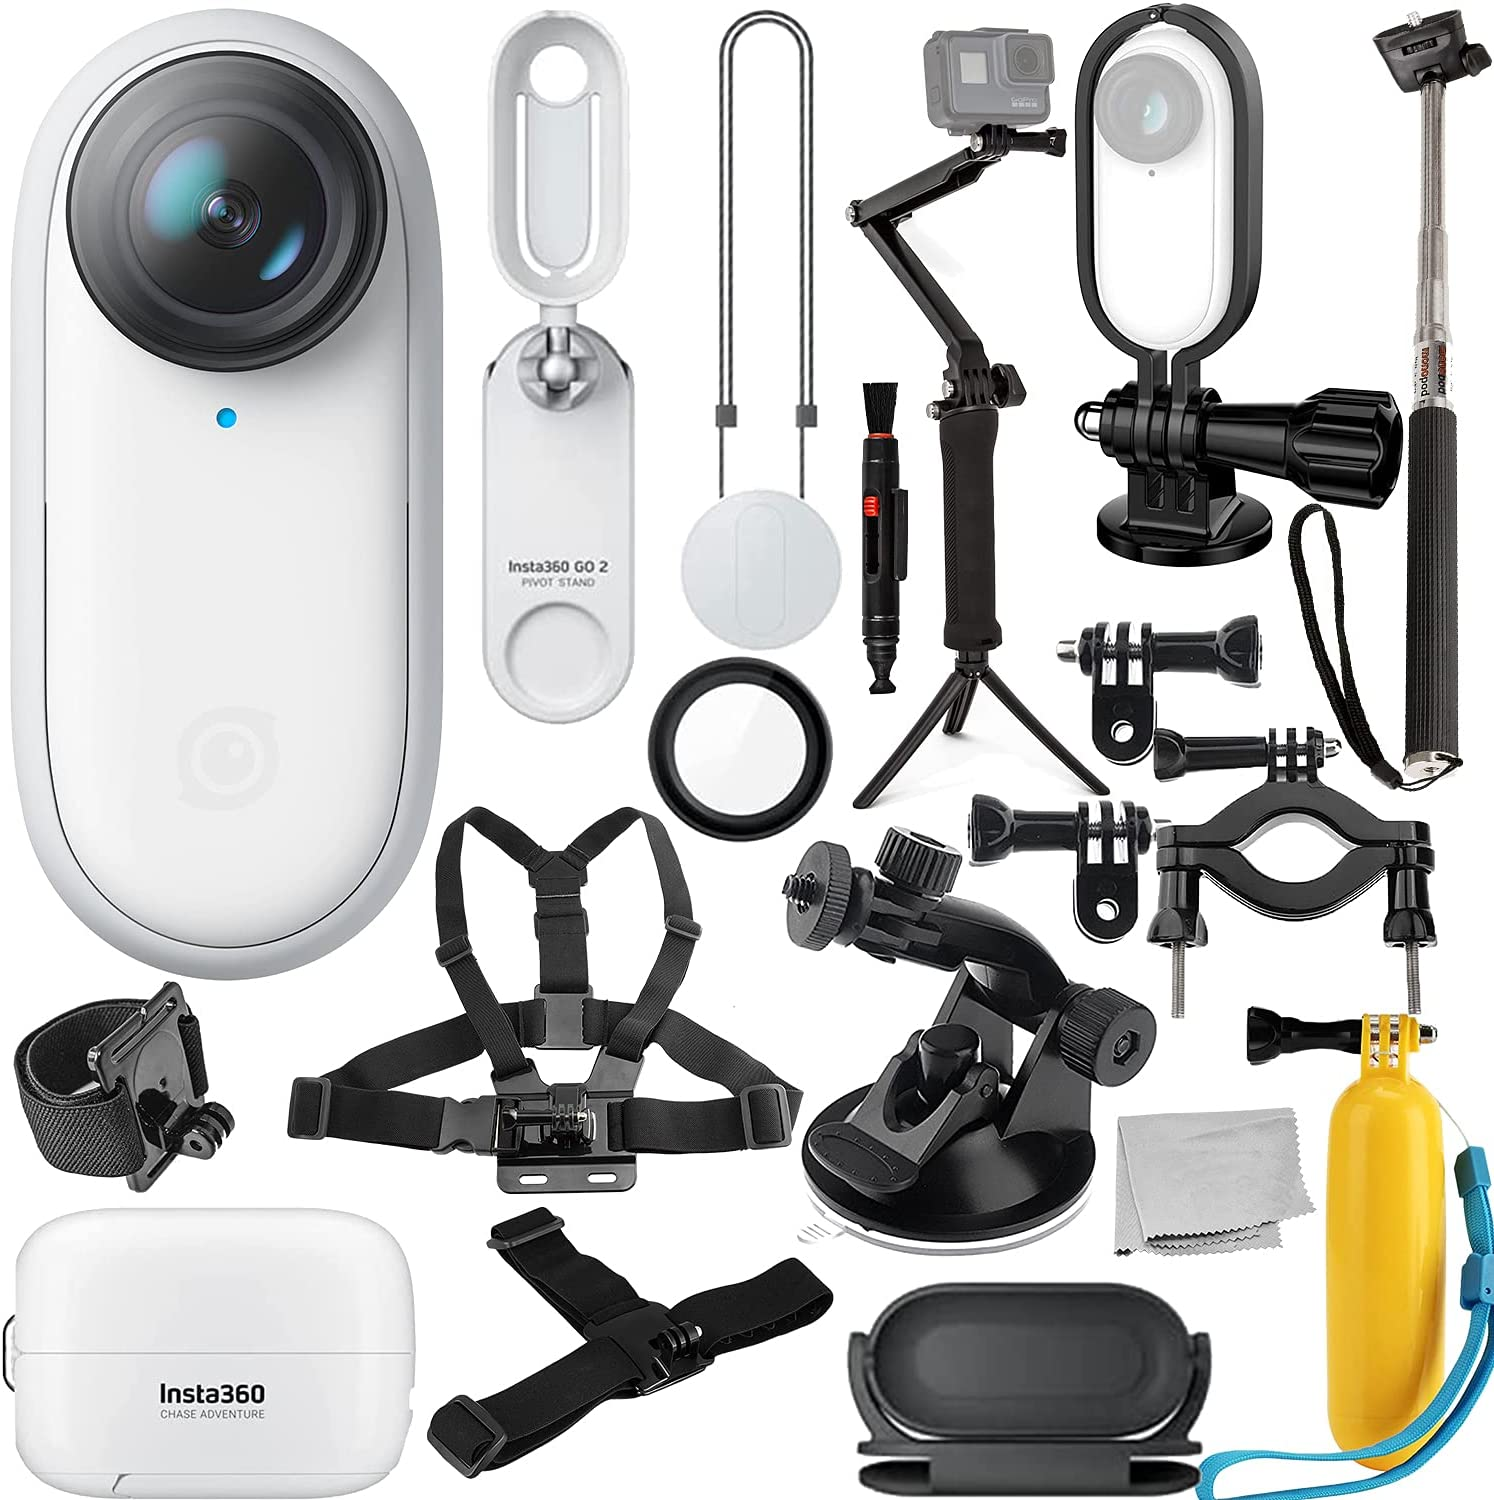 """Image of Insta360 GO 2 Action Camera With Deluxe Bundle - Includes: Action Camera Frame Adapter For Insta360 GO2, Selfie Stick, Suction Cup Mount, Floating """"Bobber"""" Handle, Pipe/Bike Mount & Much More"""